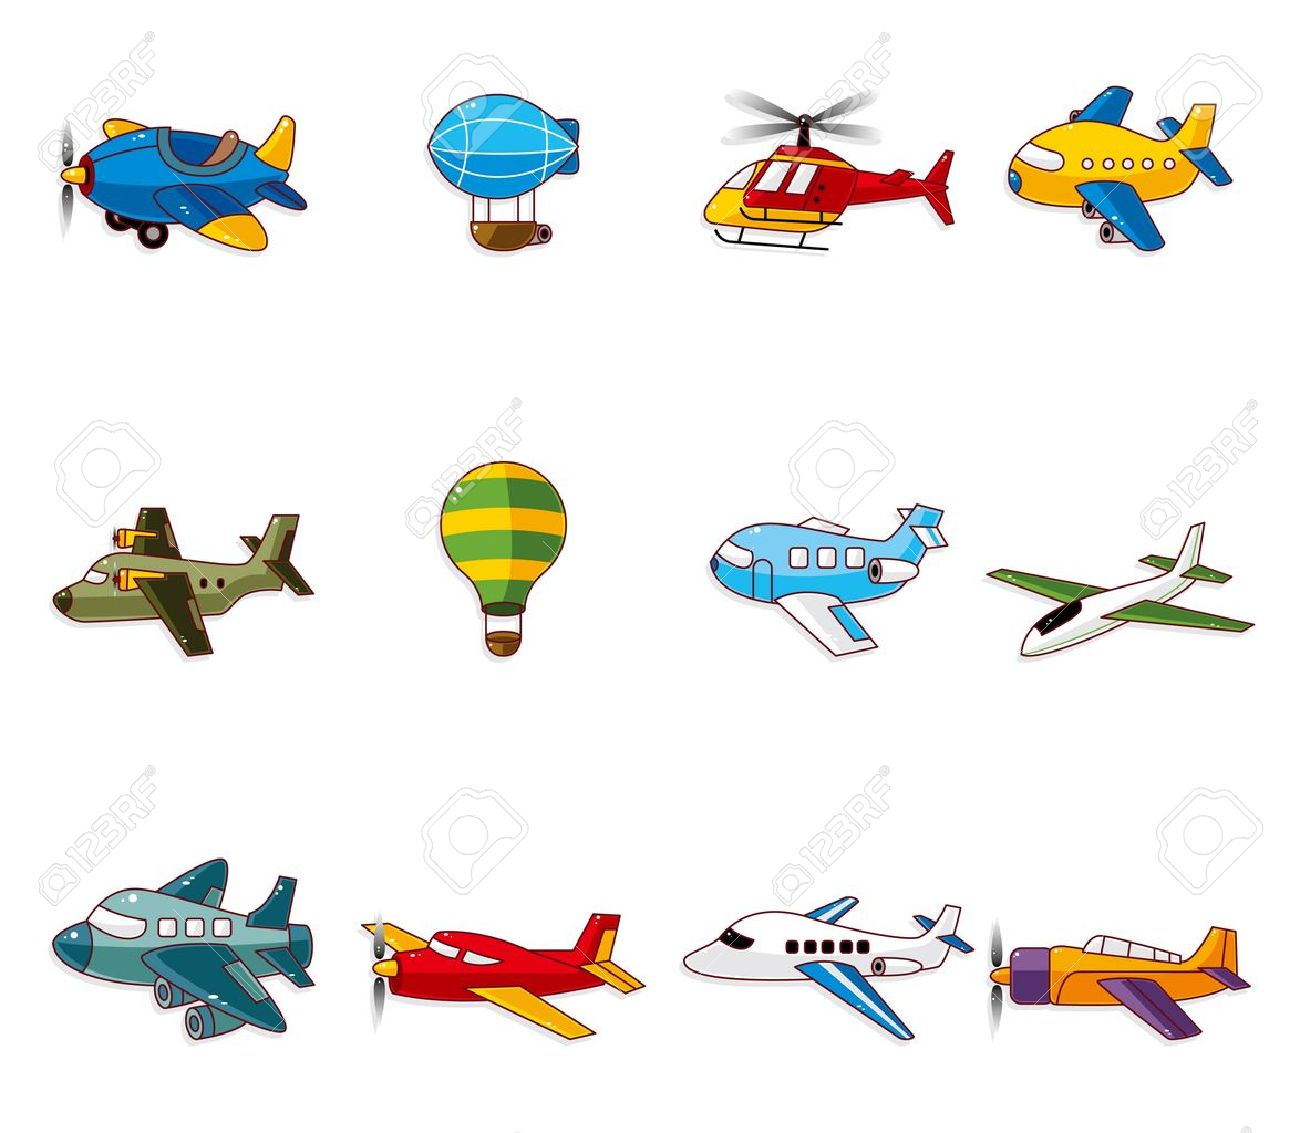 cartoon airplane icon Stock Vector - 10556479